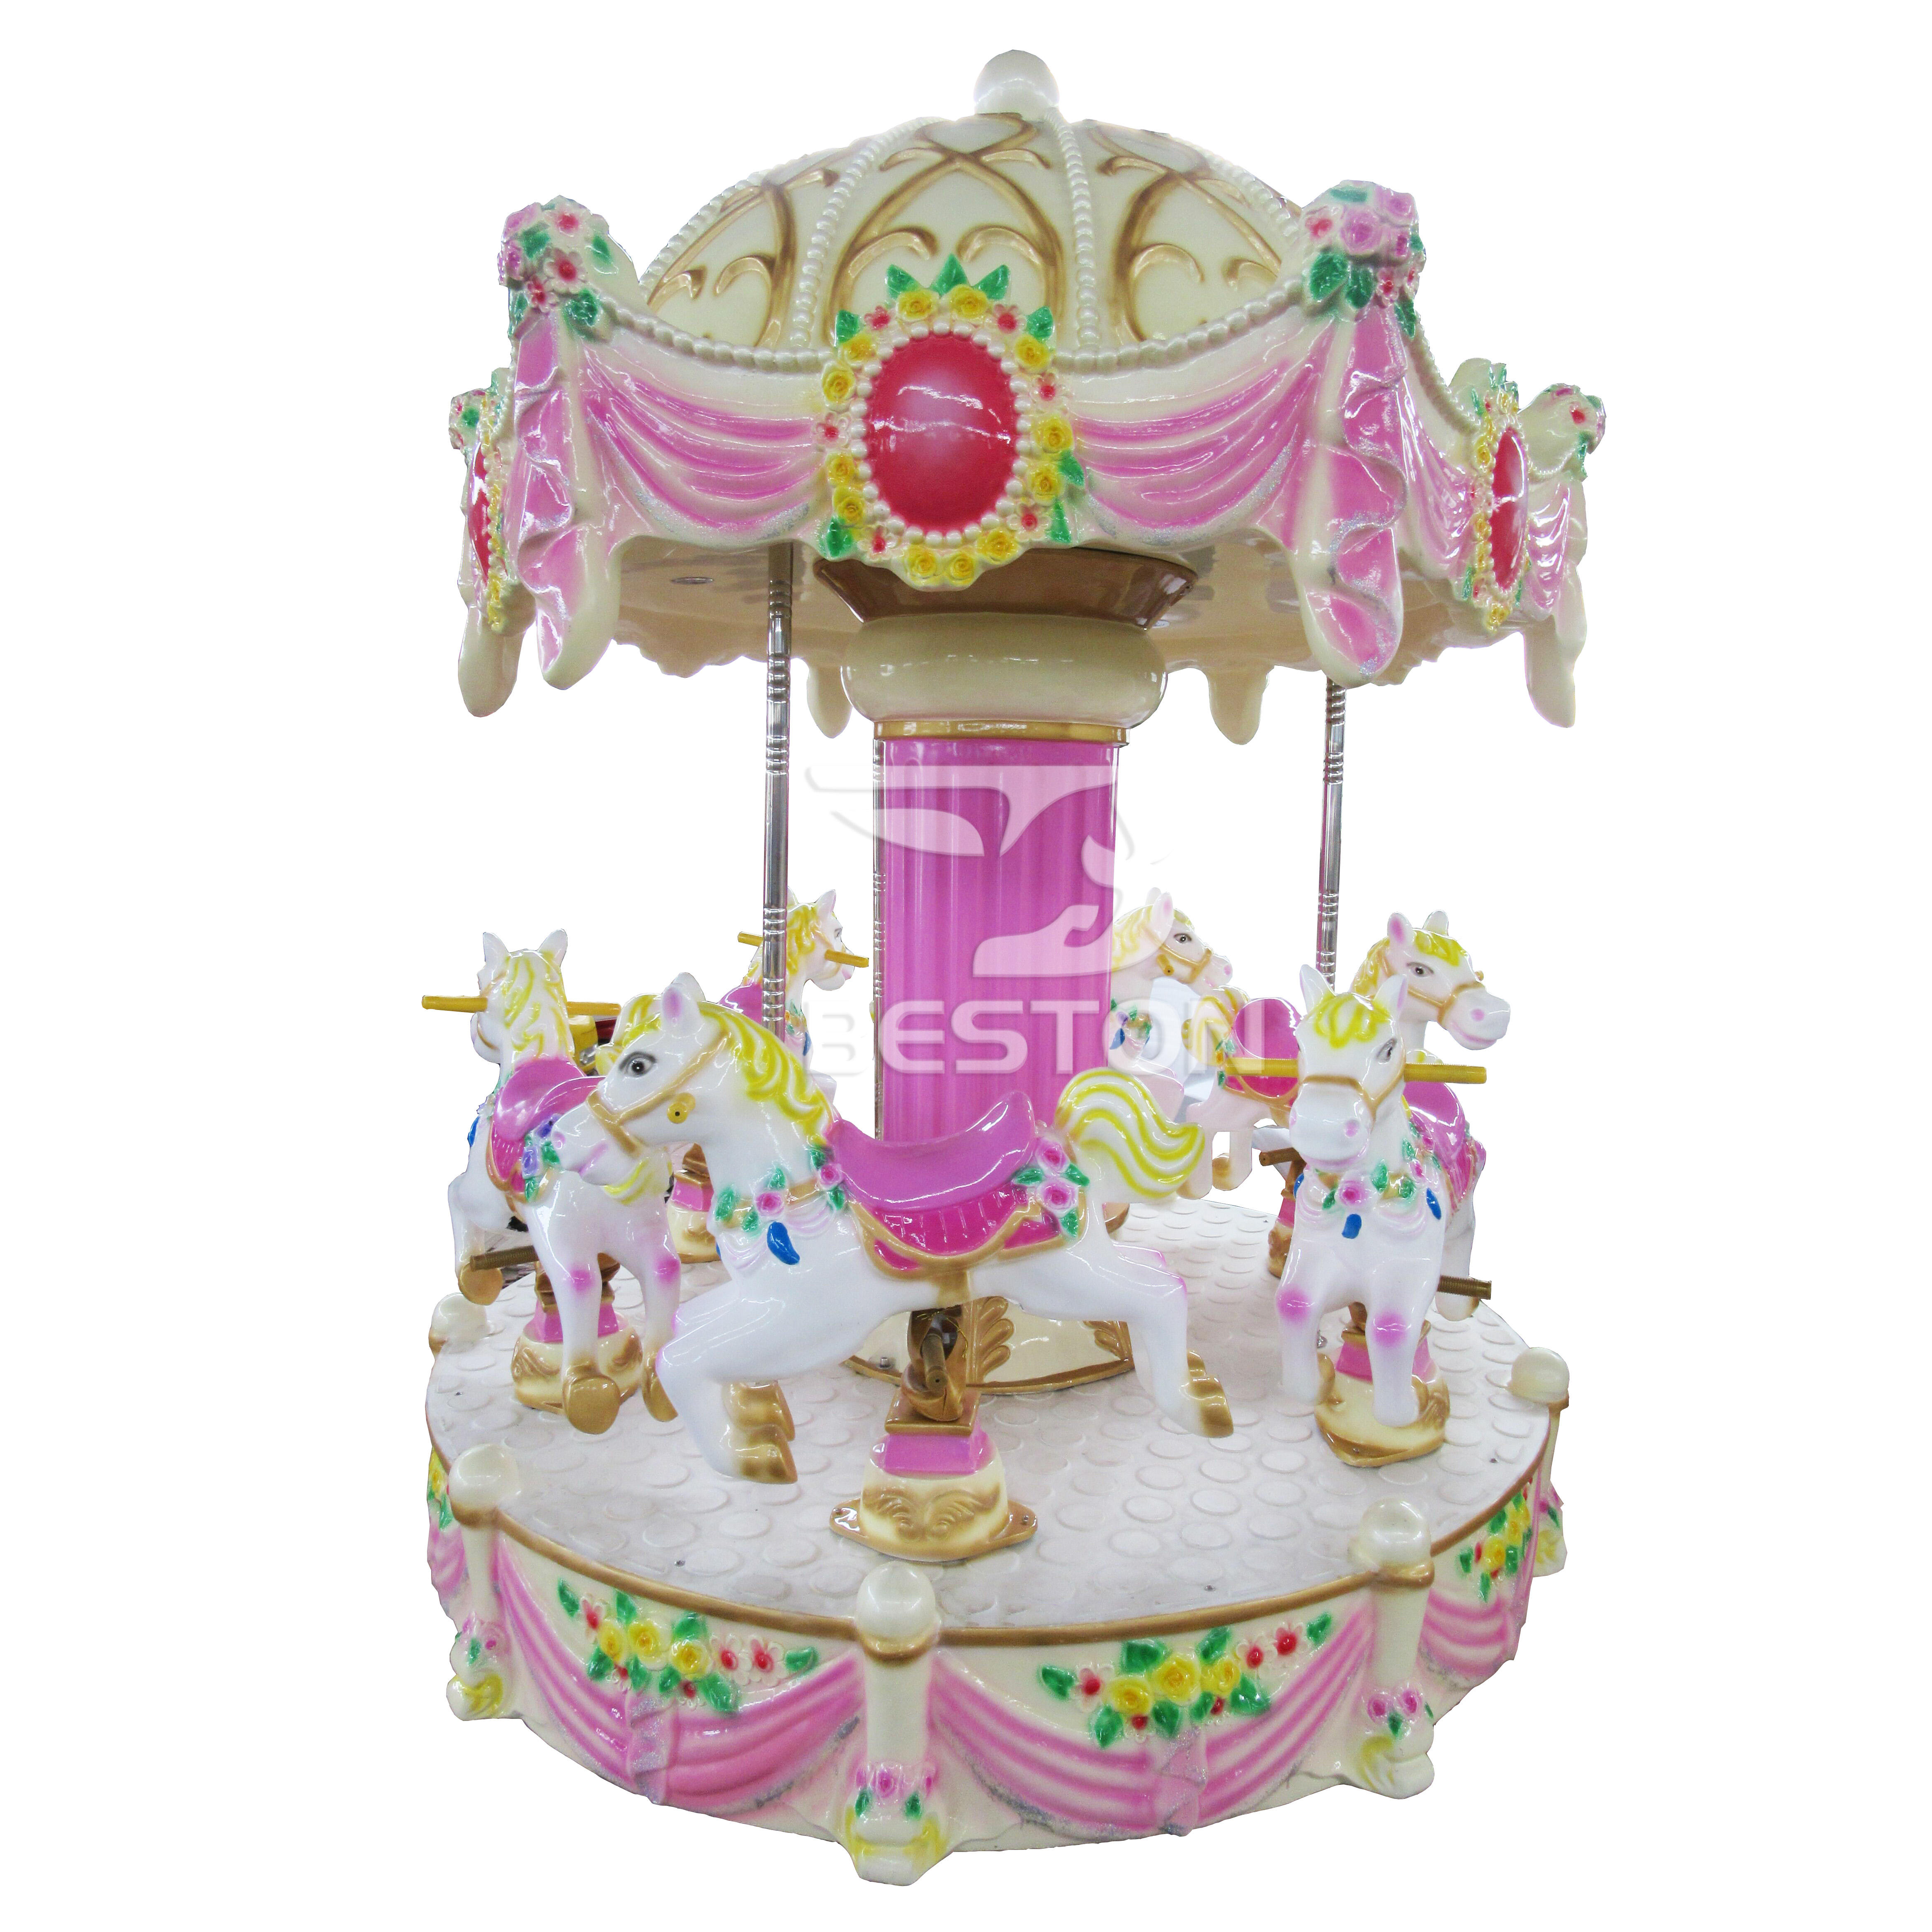 Beston Amusement Rides <span class=keywords><strong>Karussell</strong></span> 6 Personen Mini <span class=keywords><strong>Karussell</strong></span> Für Kinder billig